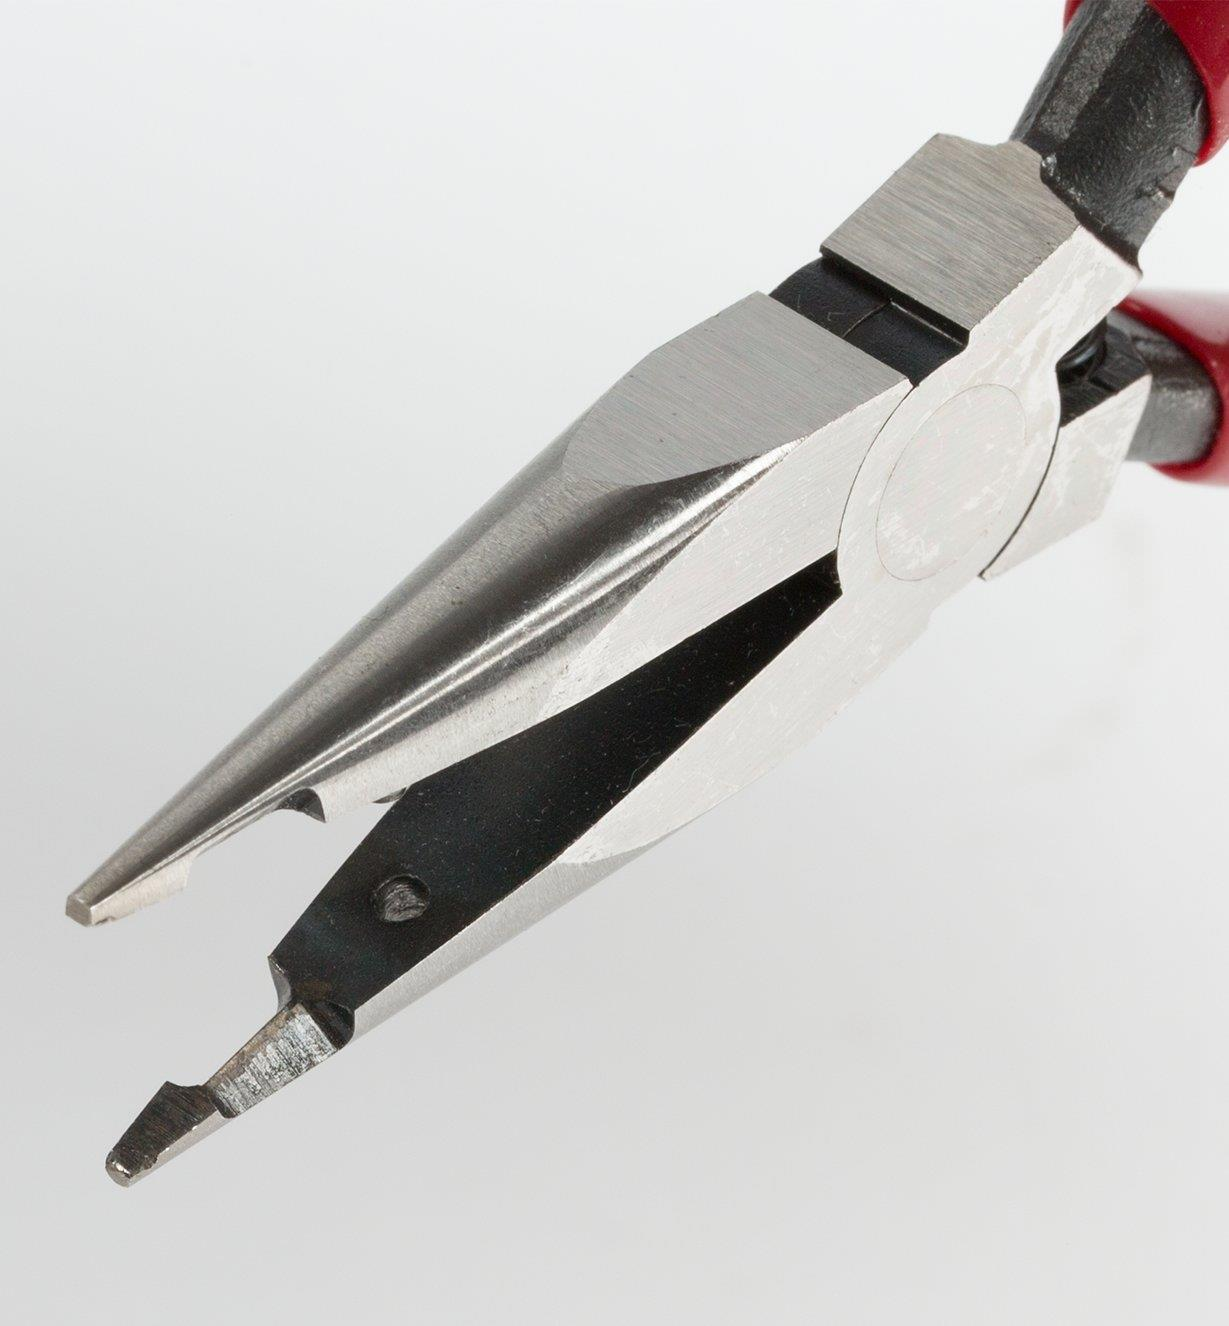 60K2302 - Mini Needle-Nose Pliers with Tip Cutters